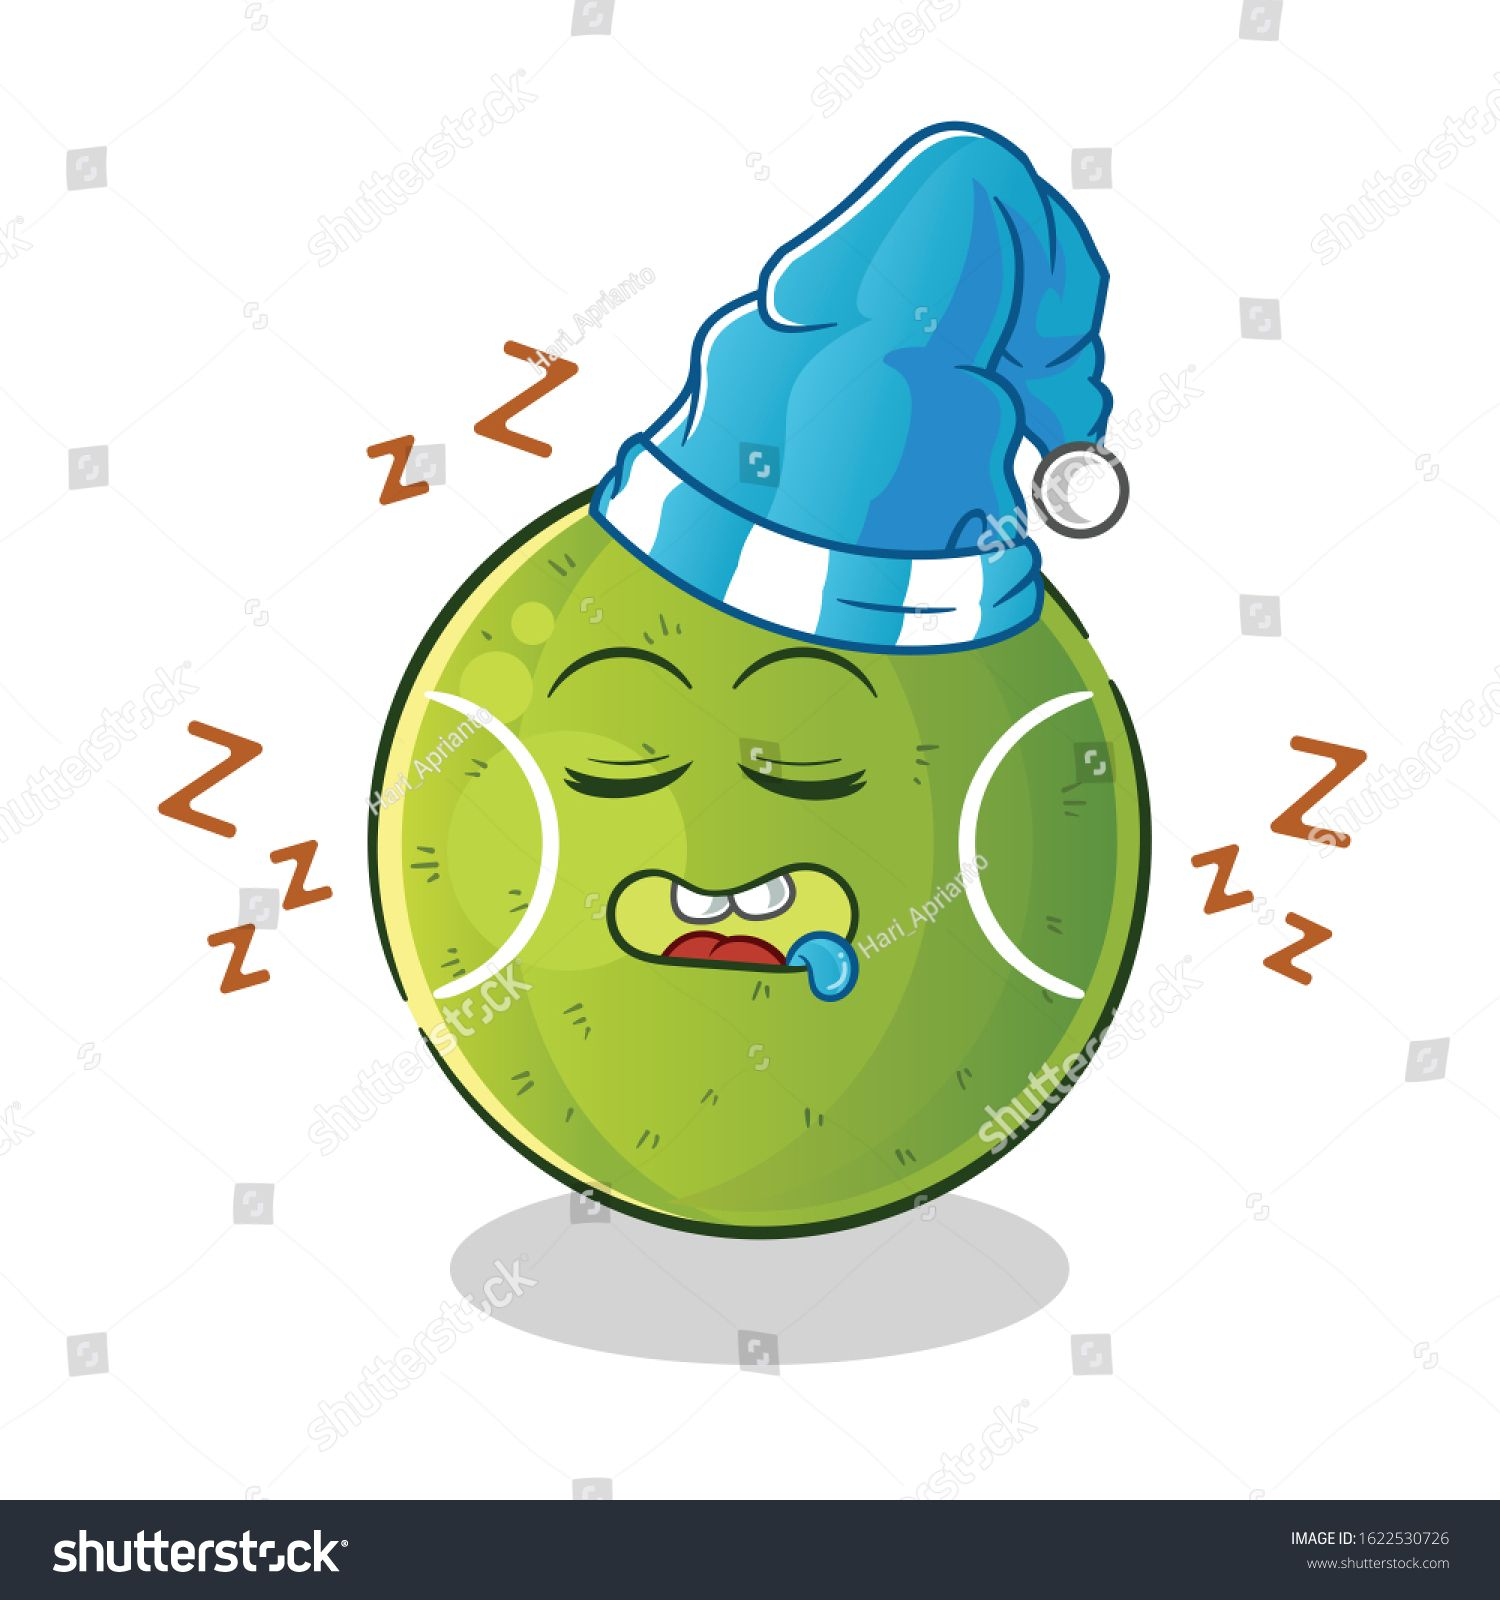 Tennis Ball Sleeping With Sleeping Hat Cartoon Cute Chibi Cartoon Mascot Vector Ad Affiliate Sleeping Hat Tennis Ball In 2020 Sleep Hat Cute Chibi Photo Editing